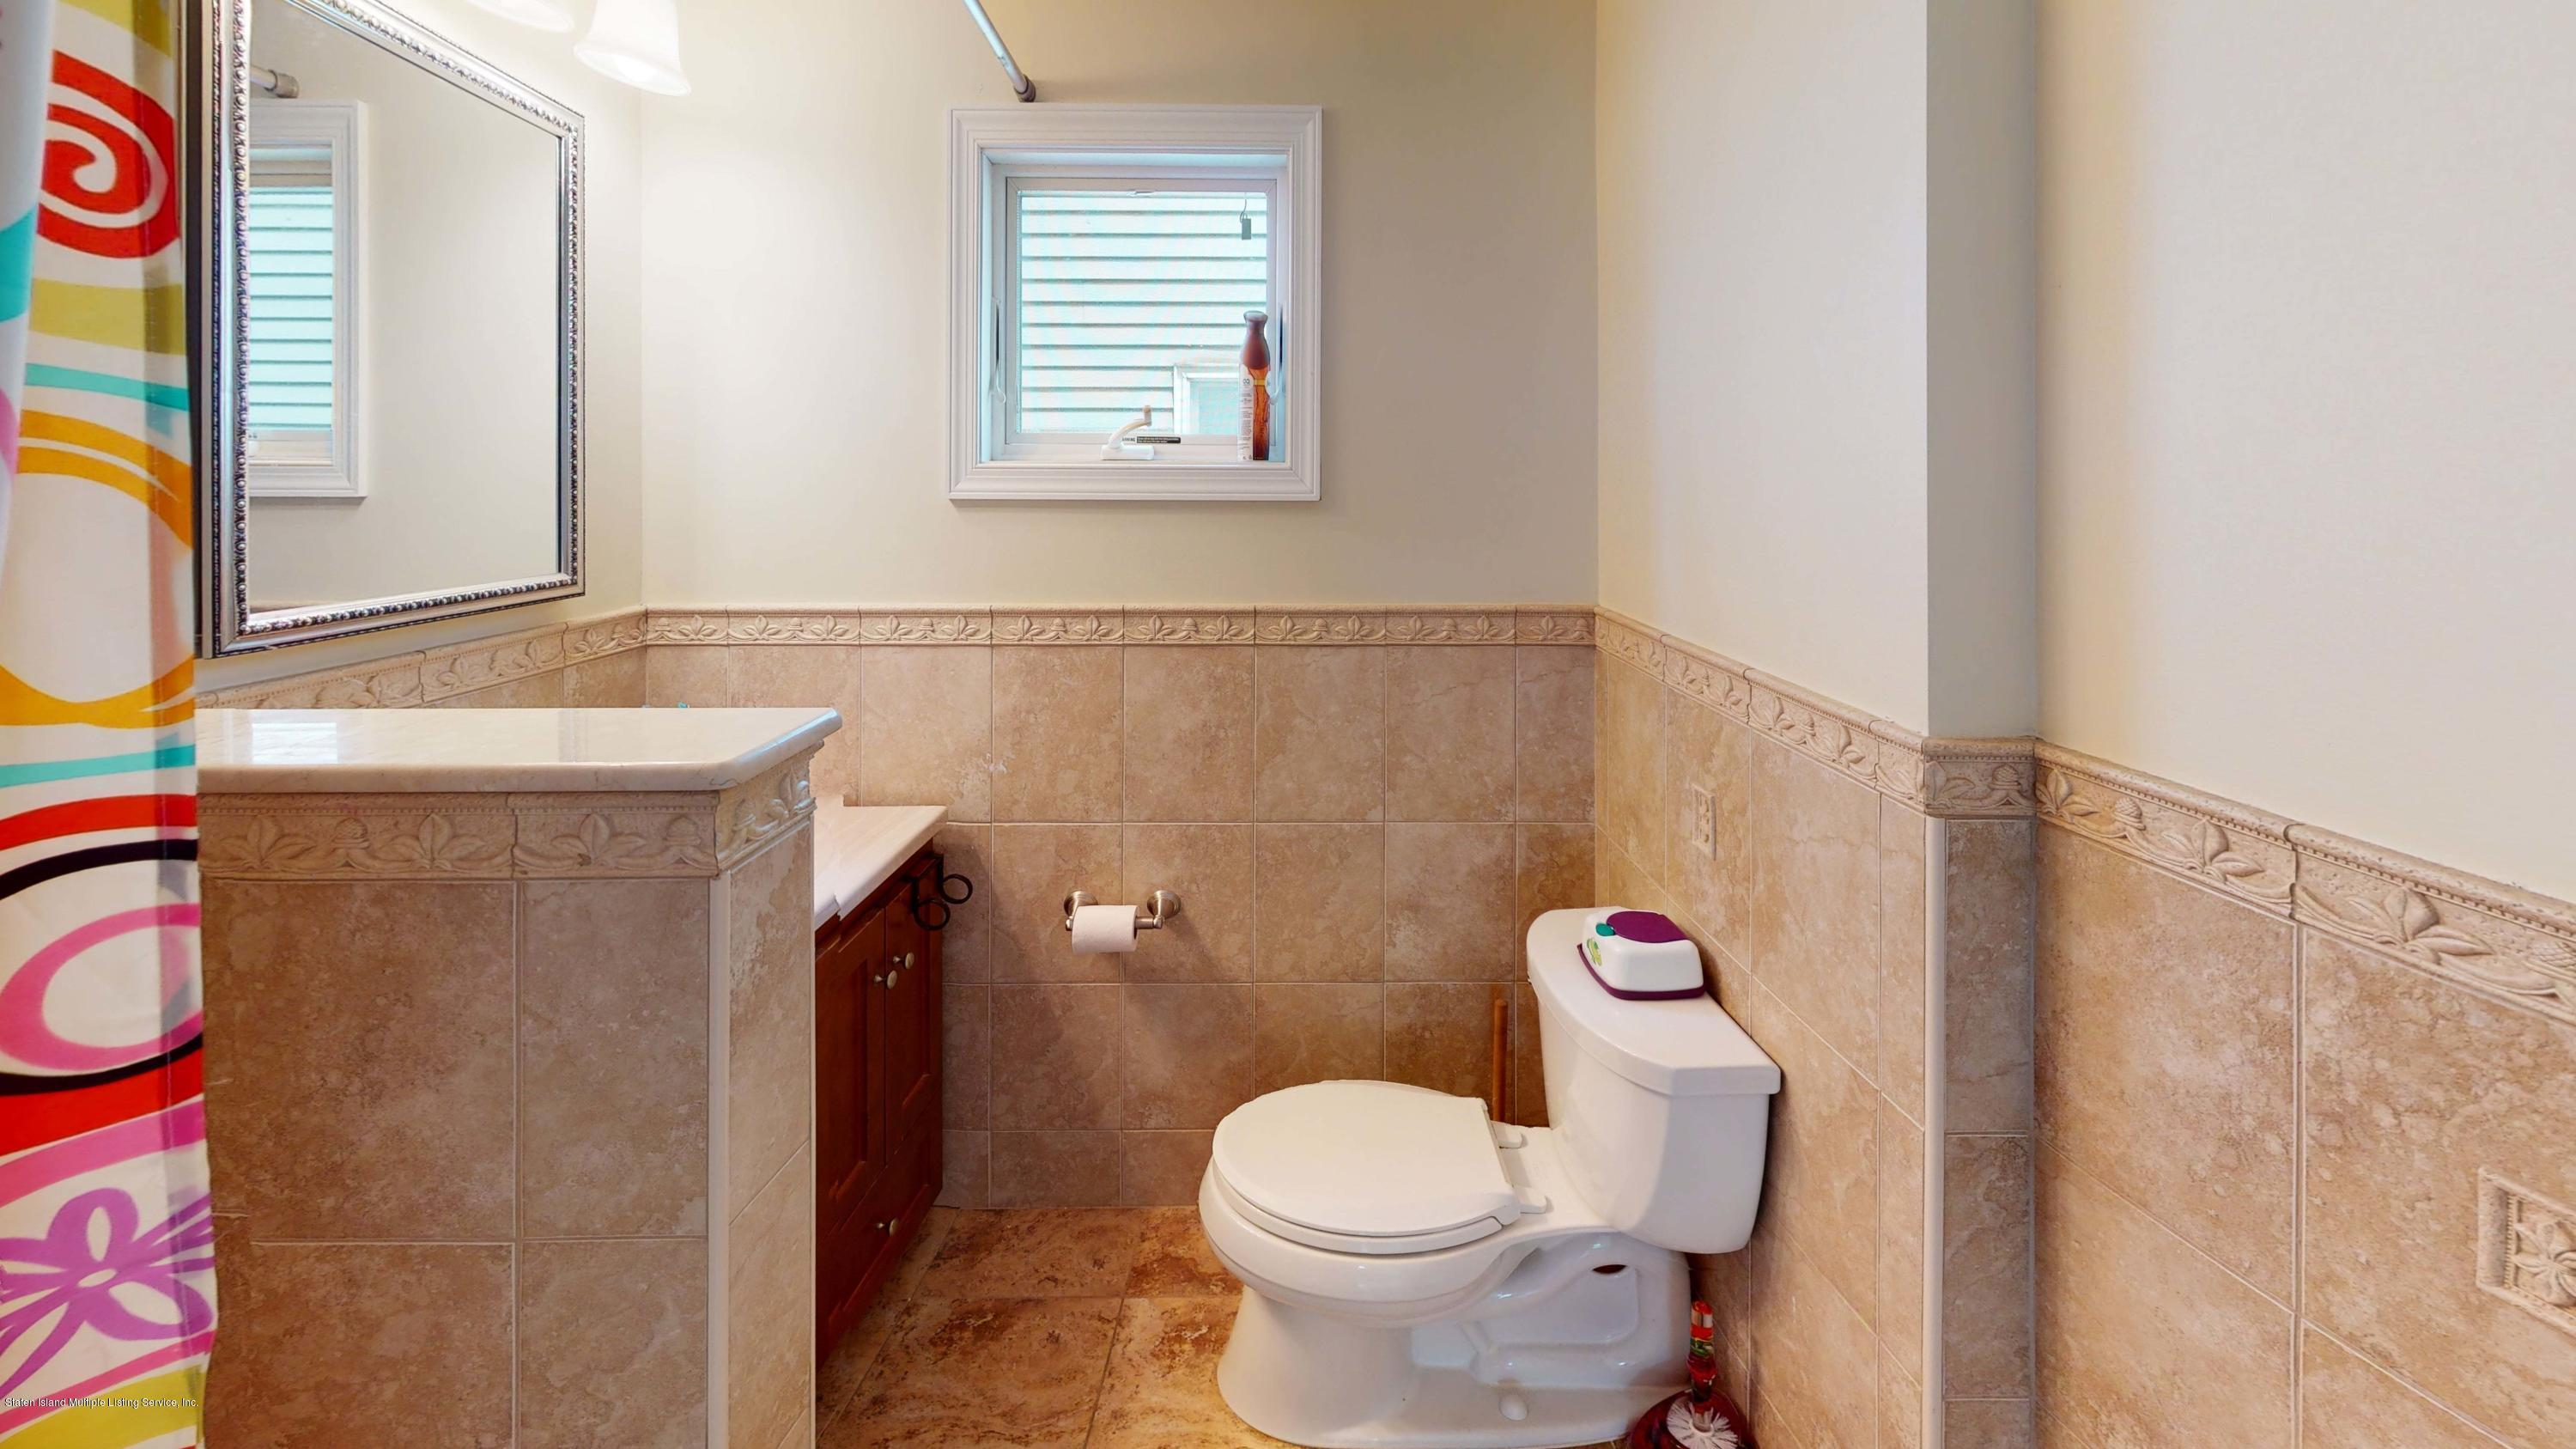 Single Family - Detached 129 Lucille Avenue  Staten Island, NY 10309, MLS-1135888-9